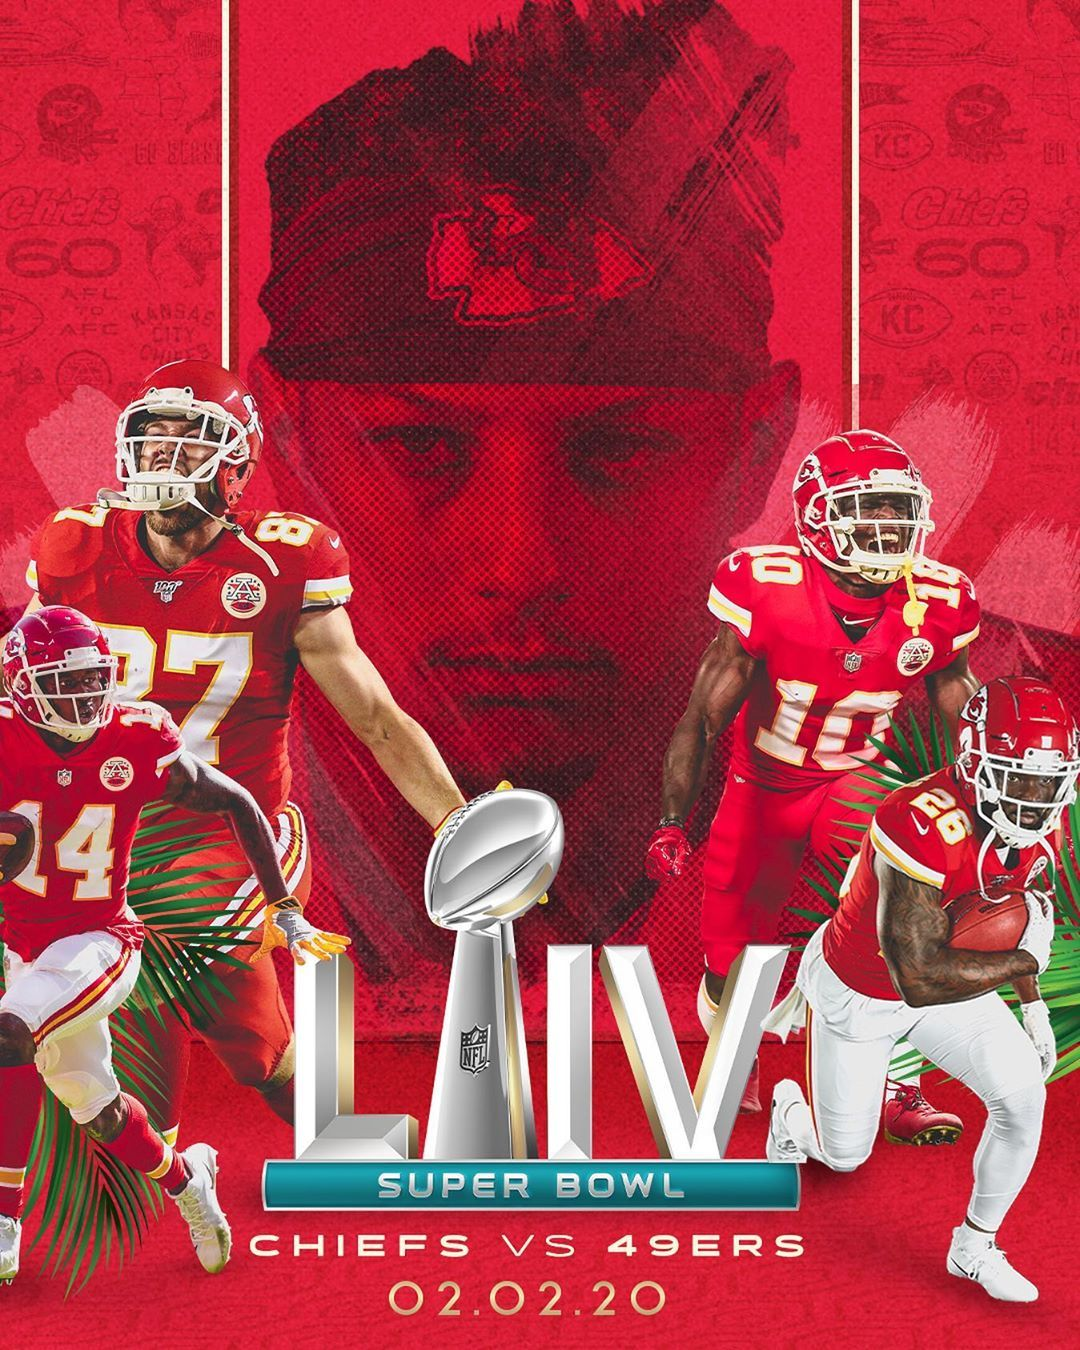 Pin By Mary Johnson On Kc Chiefs In 2020 Kansas City Chiefs Kansas City Chiefs Football Chiefs Wallpaper